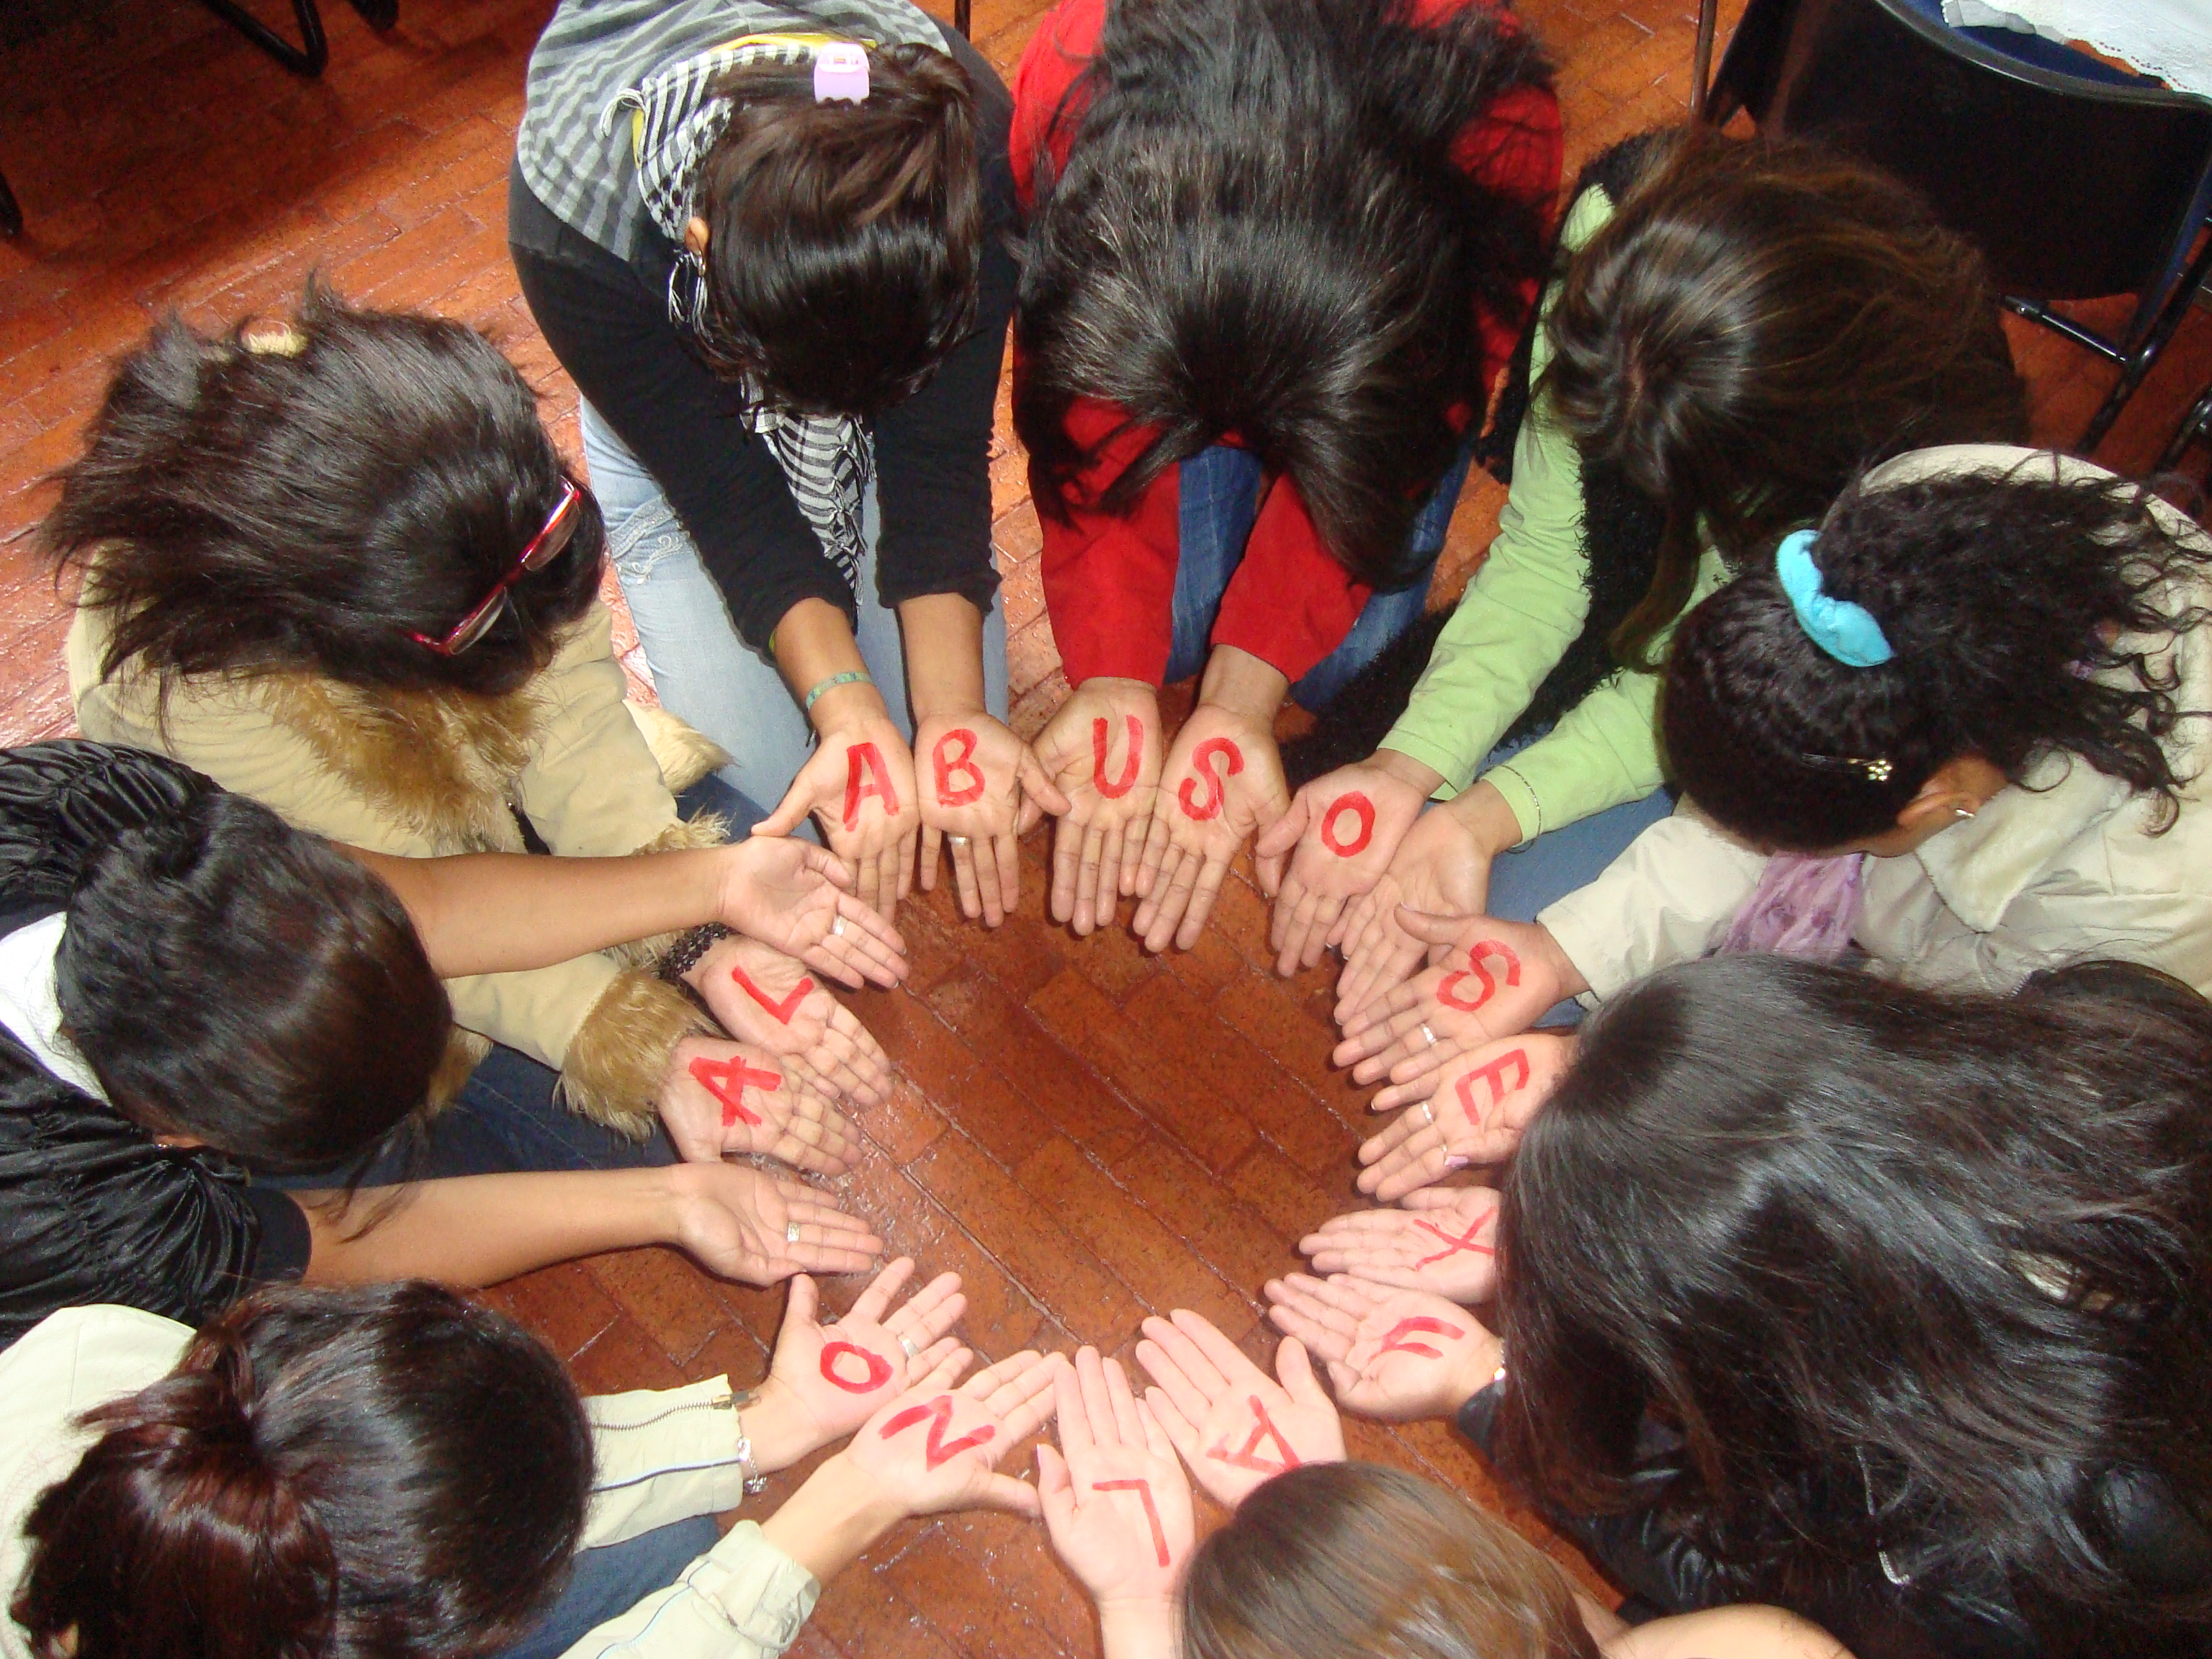 "Members of a support group for survivors of sexual violence create a circle with their hands, Bogotá, Colombia, March 2011. The letters on the hands of the women in a circle form the words ""No al abuso sexual"" (No to sexual abuse). They are a group of women who have been victims of sexual violence in the armed conflict in Colombia who meet regularly."